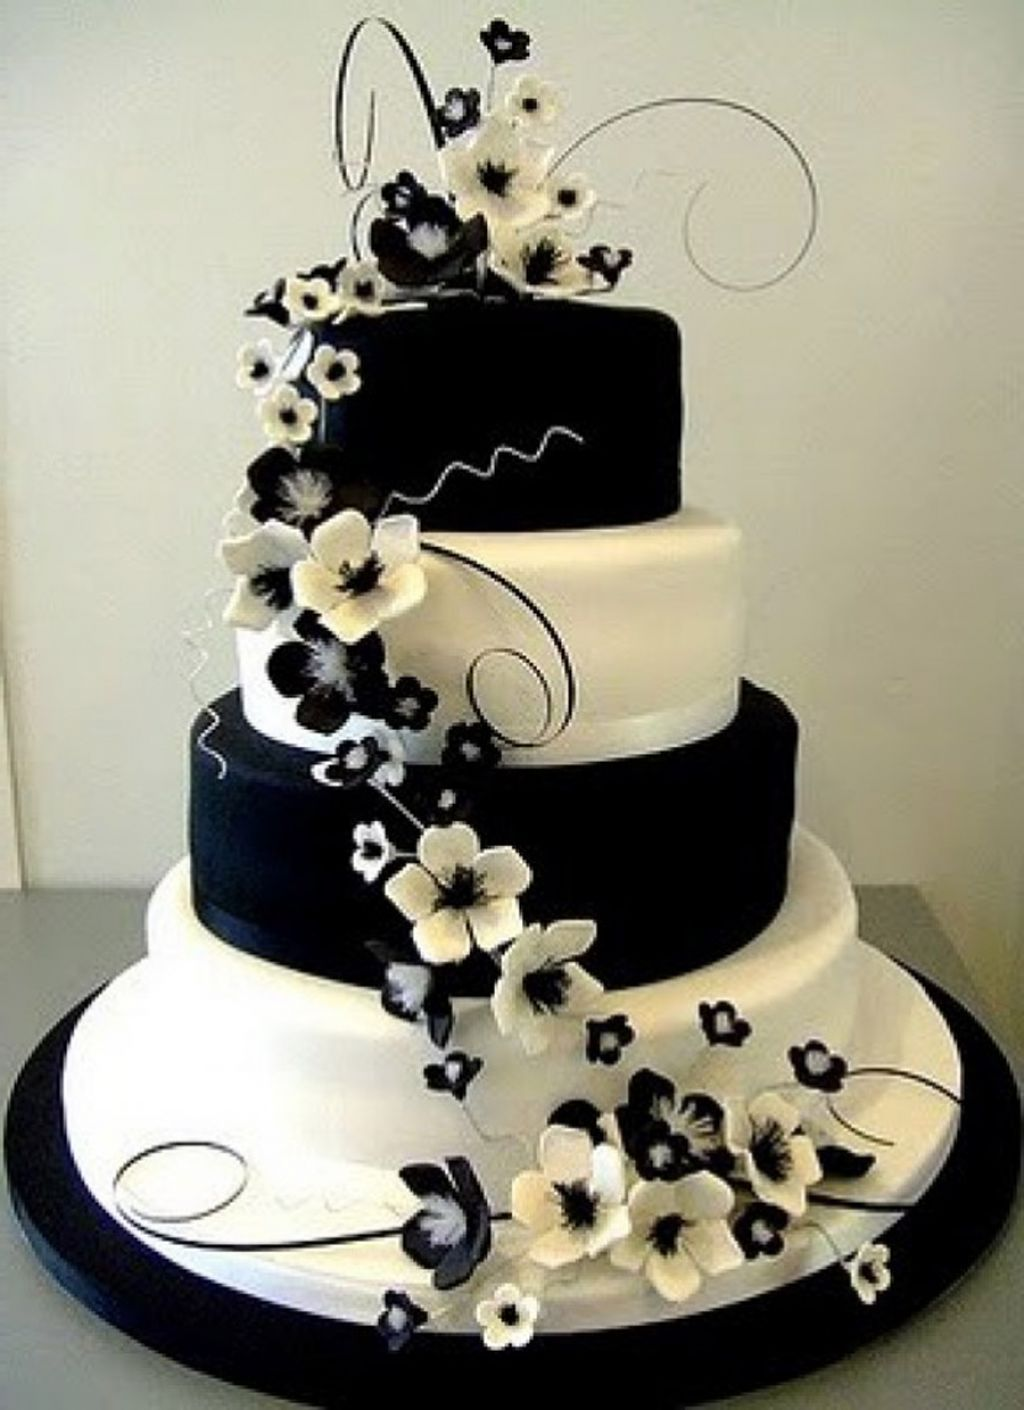 I like the black and white pattern on the layers  but I would do     I like the black and white pattern on the layers  but I would do dark  purple flowers going up the side of the cake